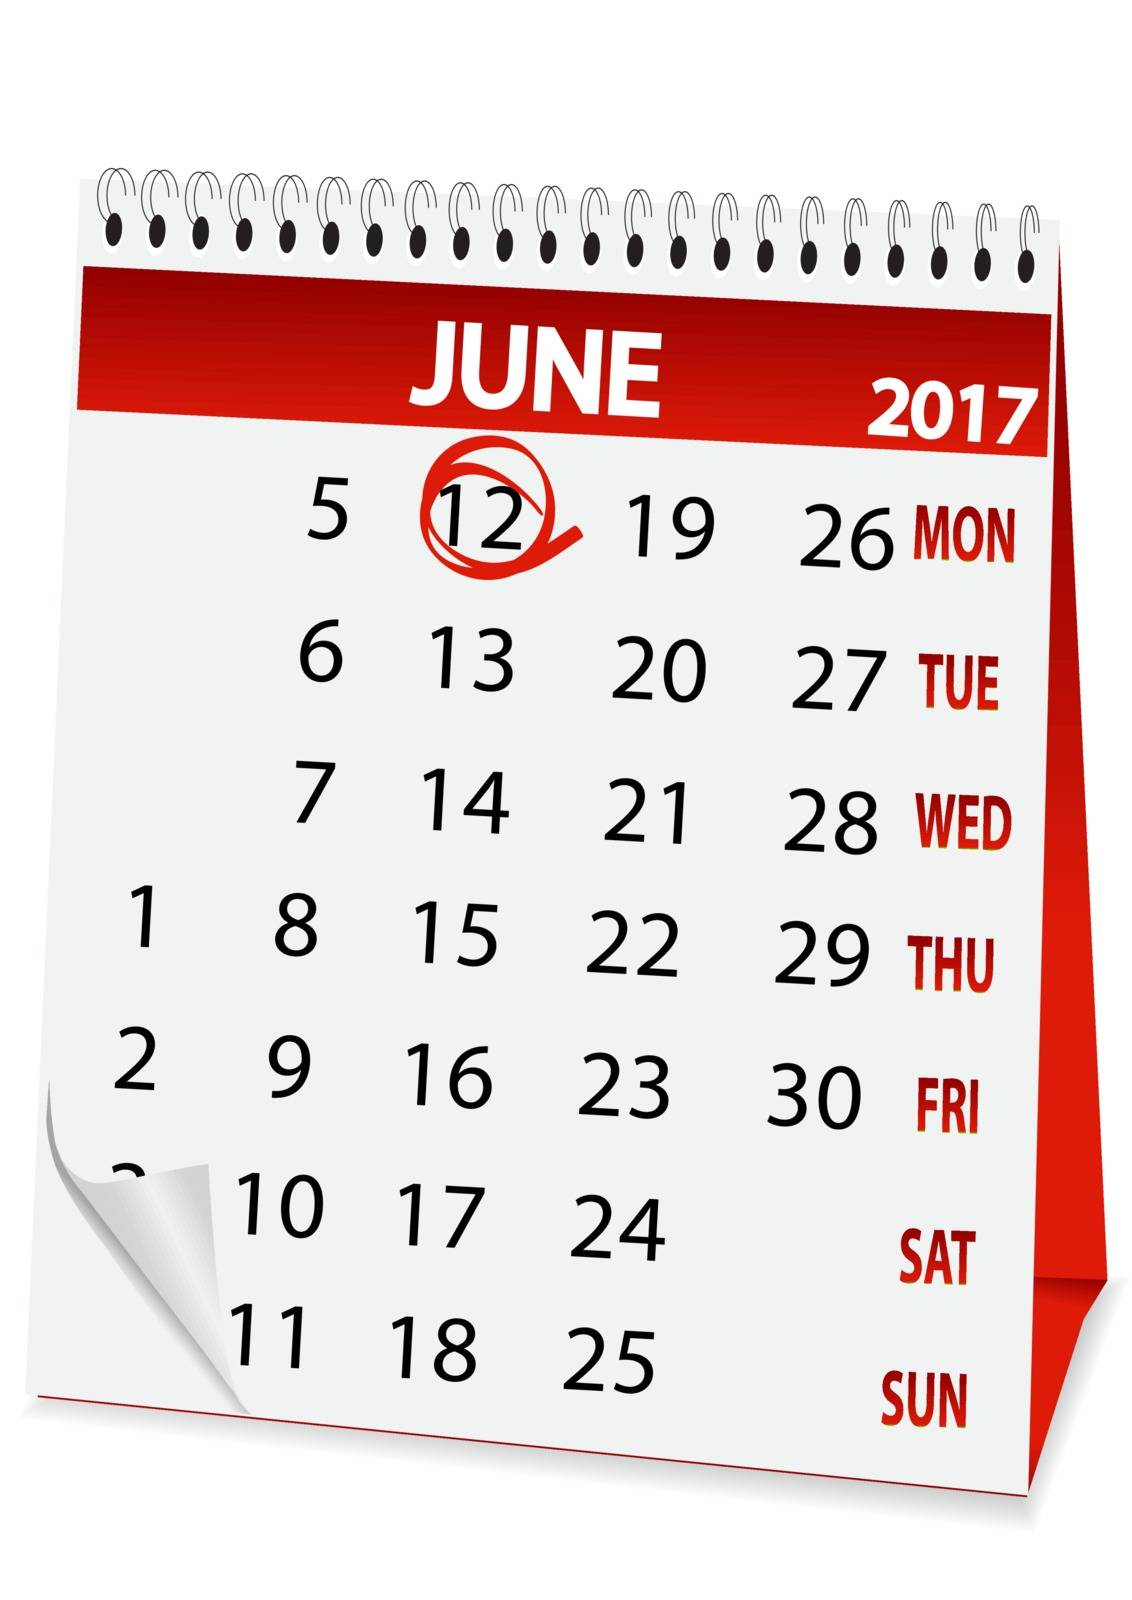 icon in the form of a calendar for June 12, Russia day